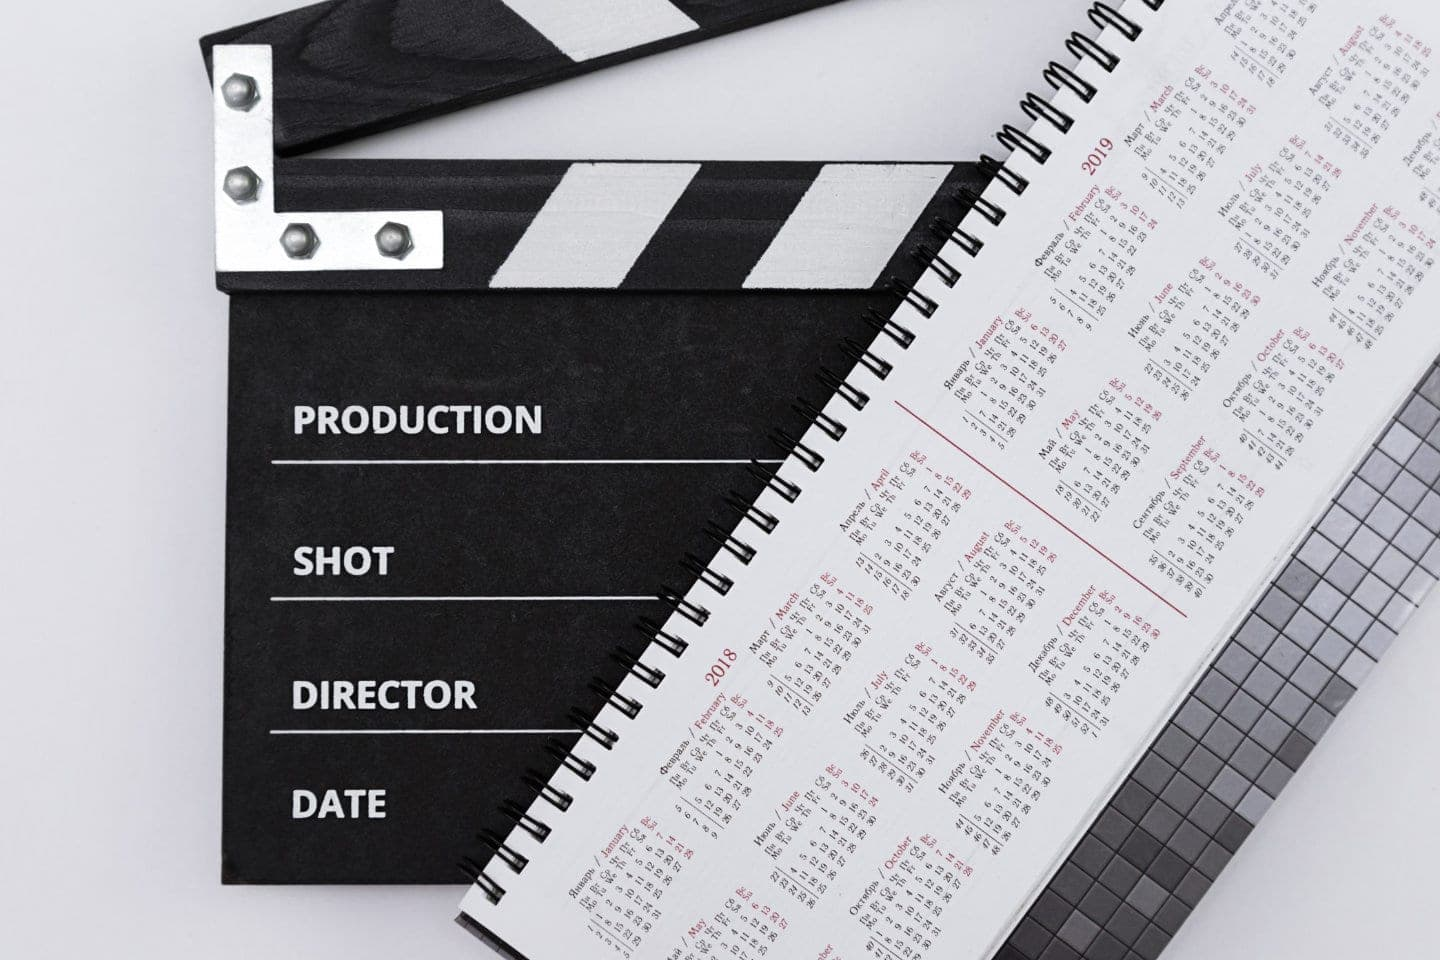 Planning To Market Your Film On Instagram? Read On To Learn All About It - Film Marketing Guide By Indie Shorts Mag